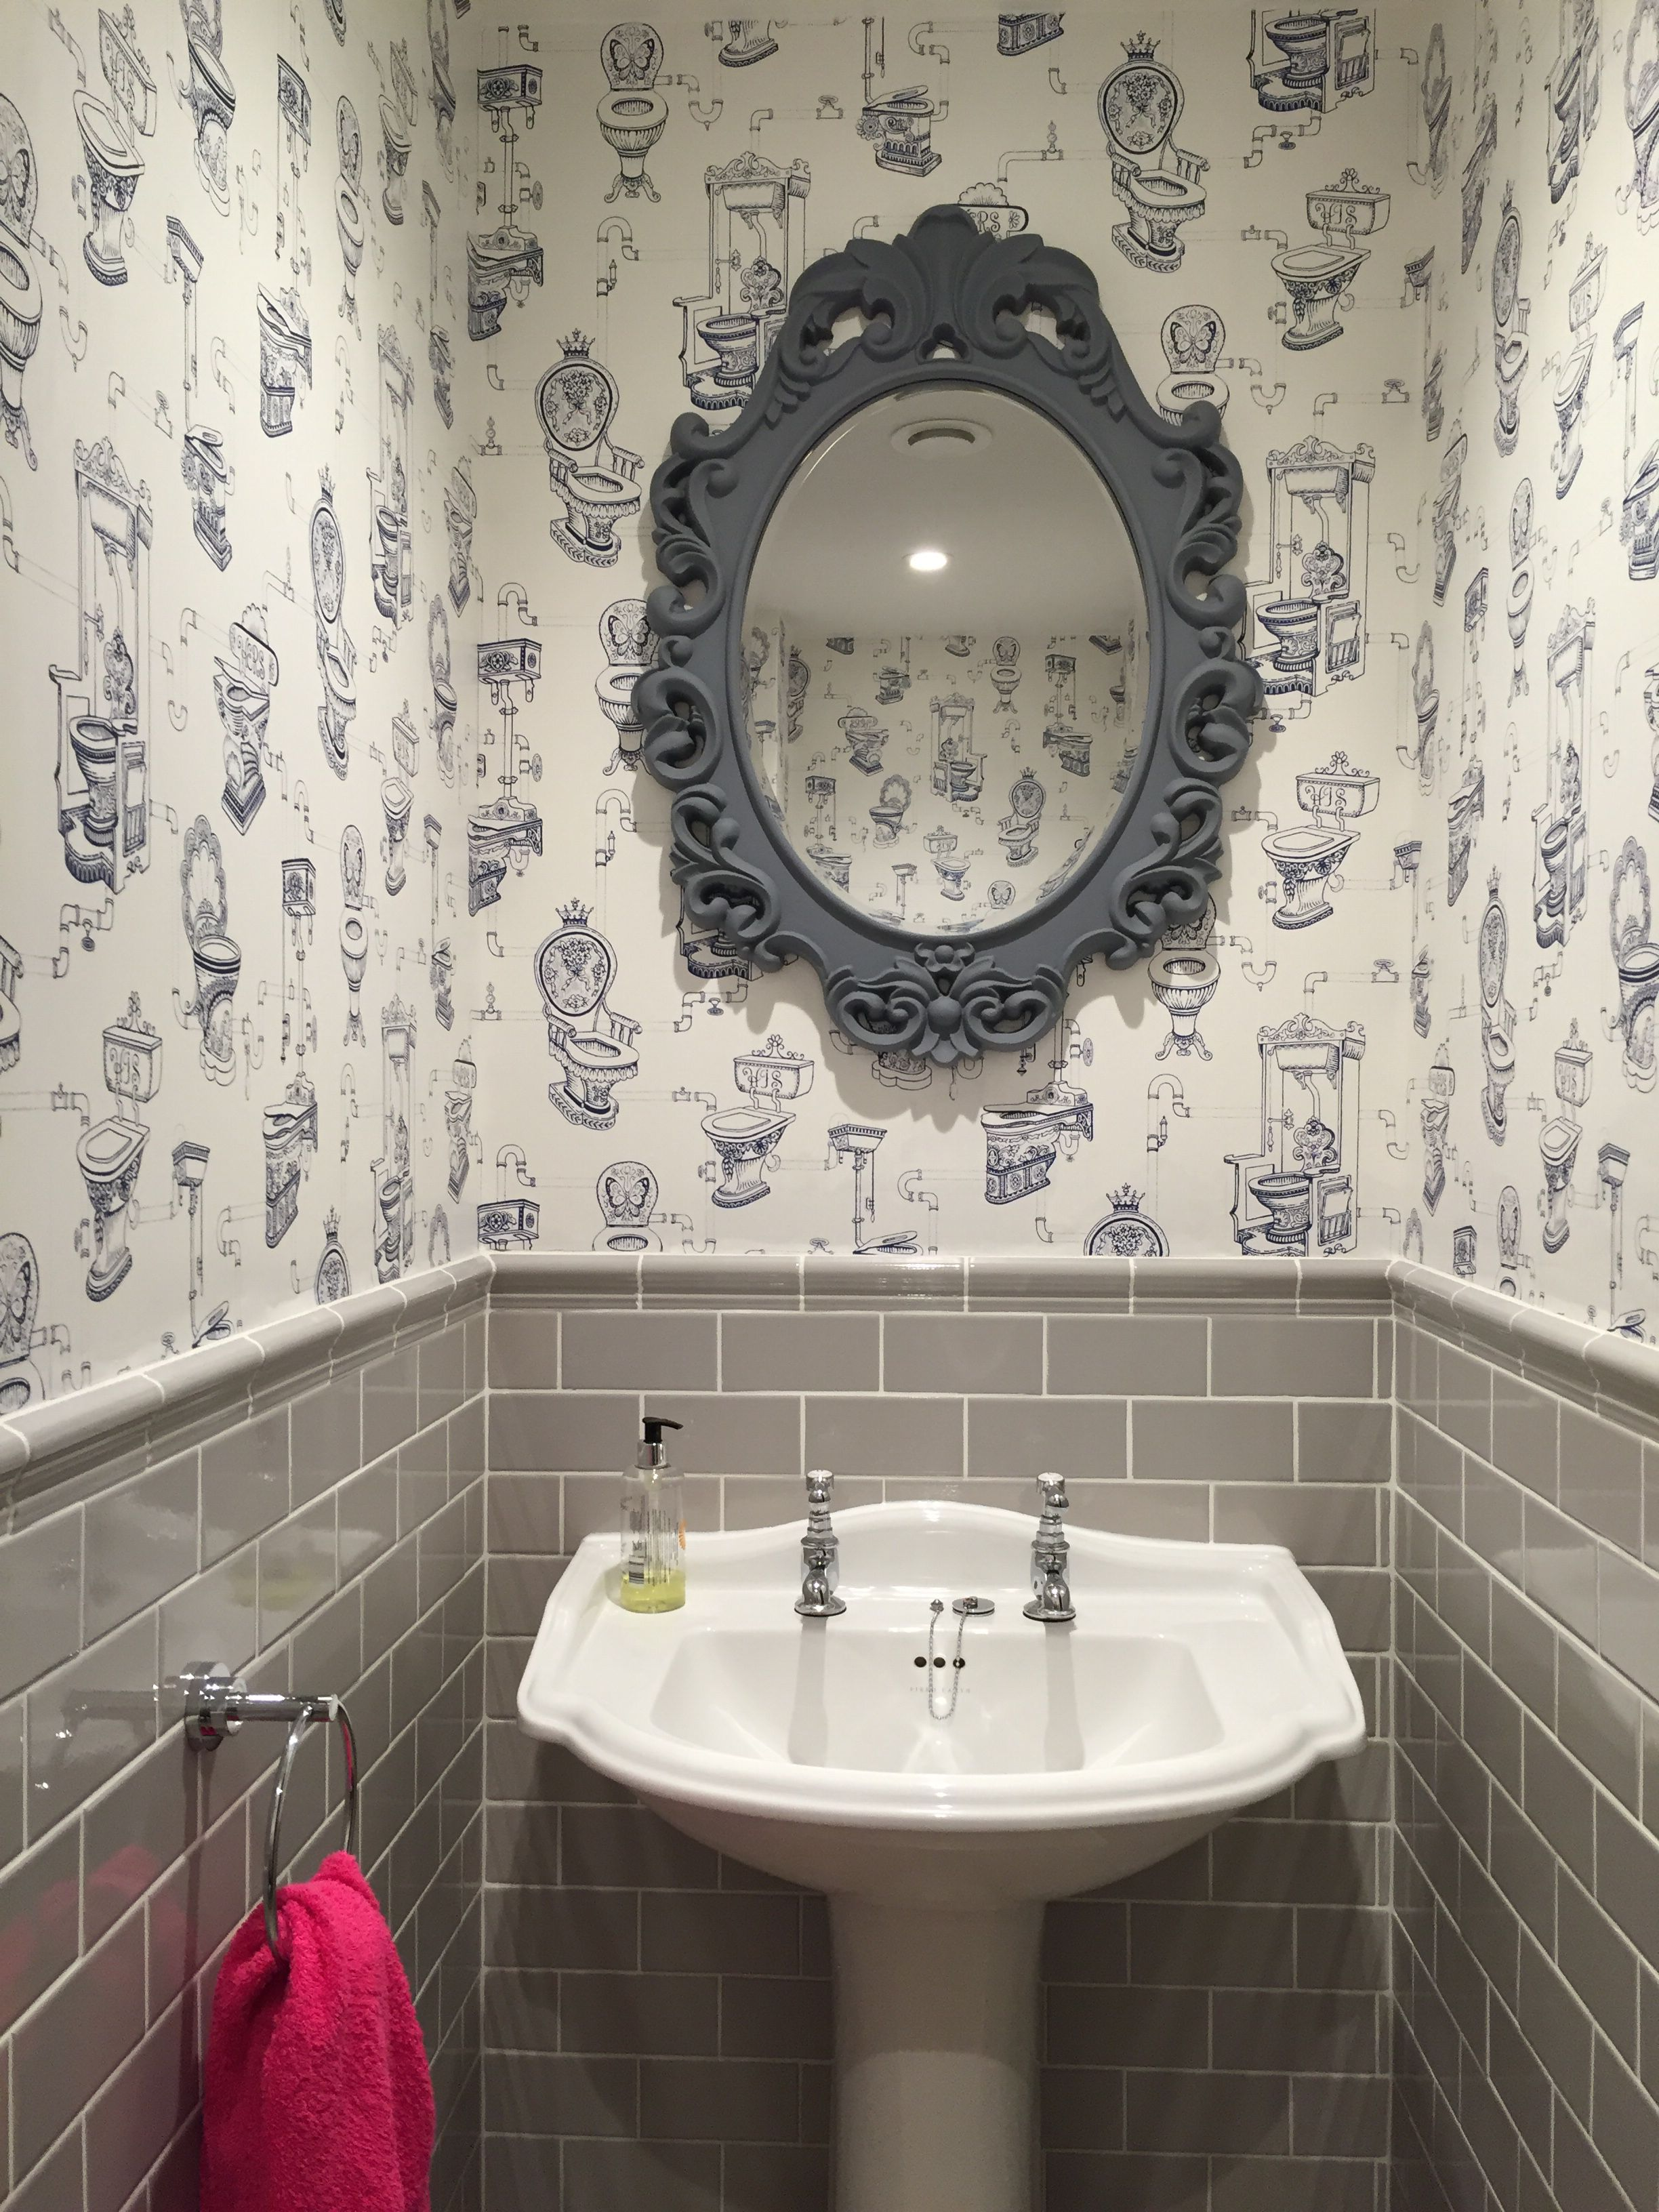 Our Downstairs Toilet Fun Wallpaper From Graham Brown Blue Loo